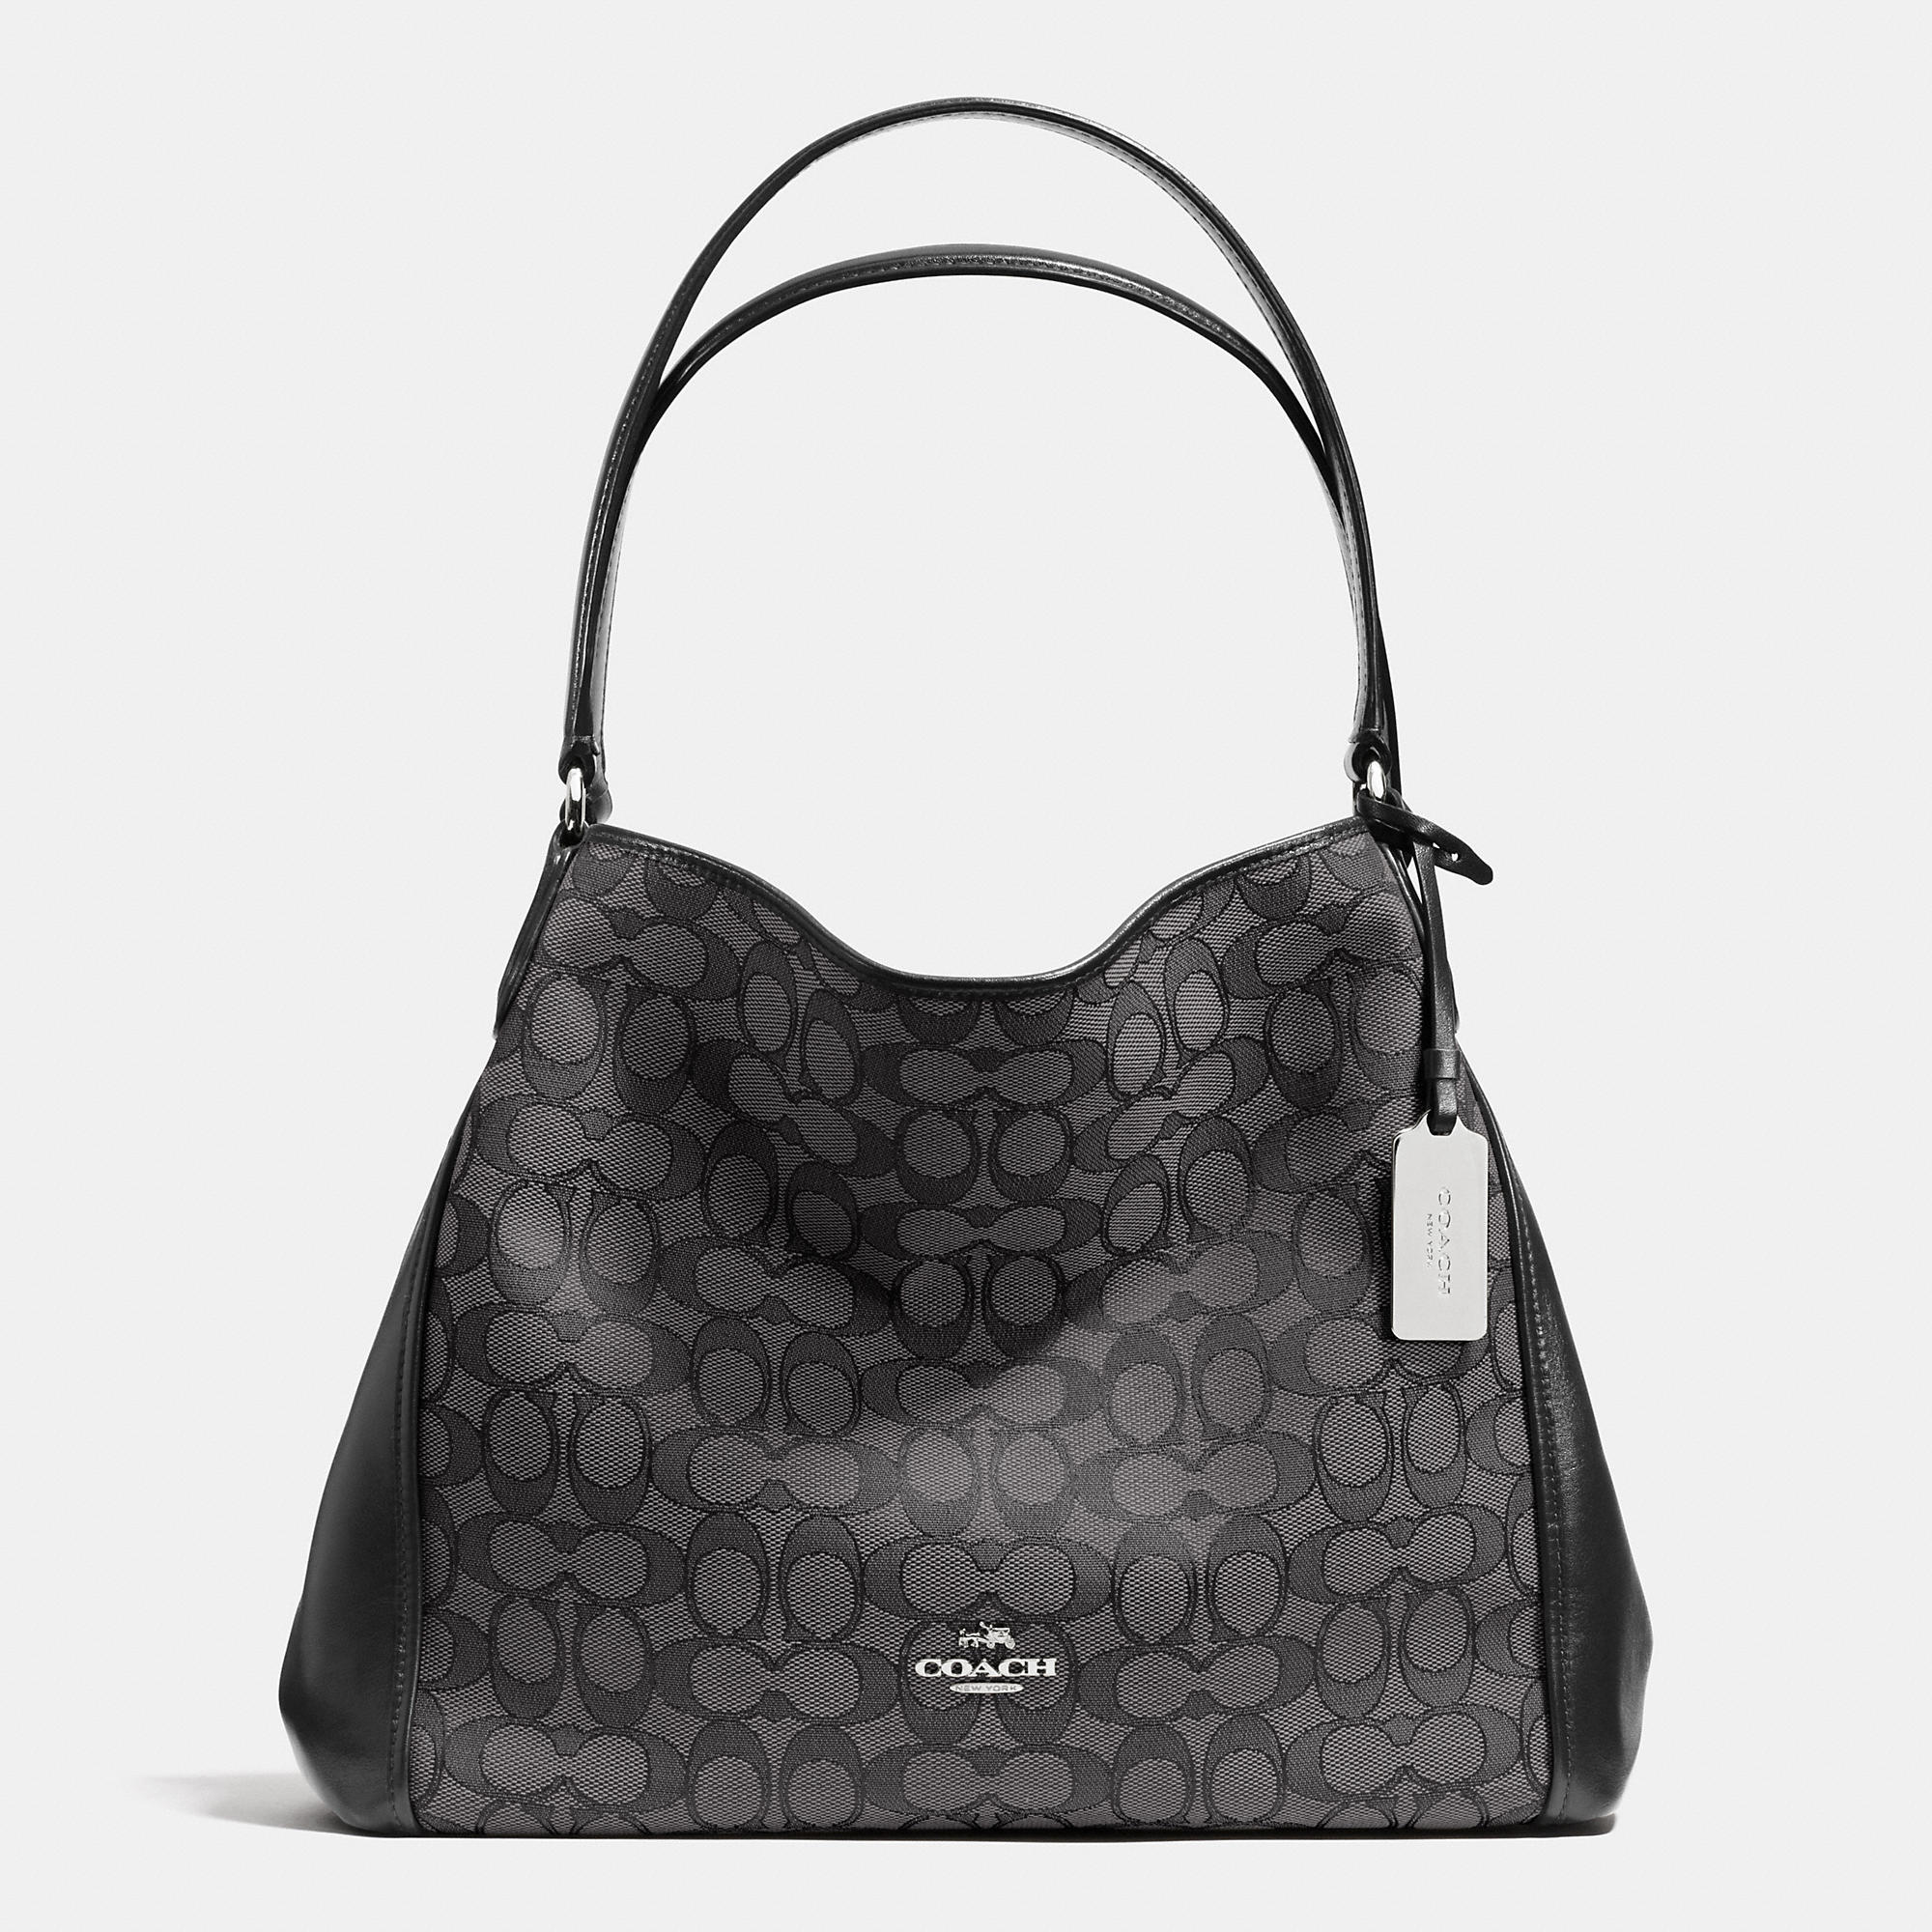 Coach Edie Shoulder Bag 31 In Signature Jacquard in Gray | Lyst